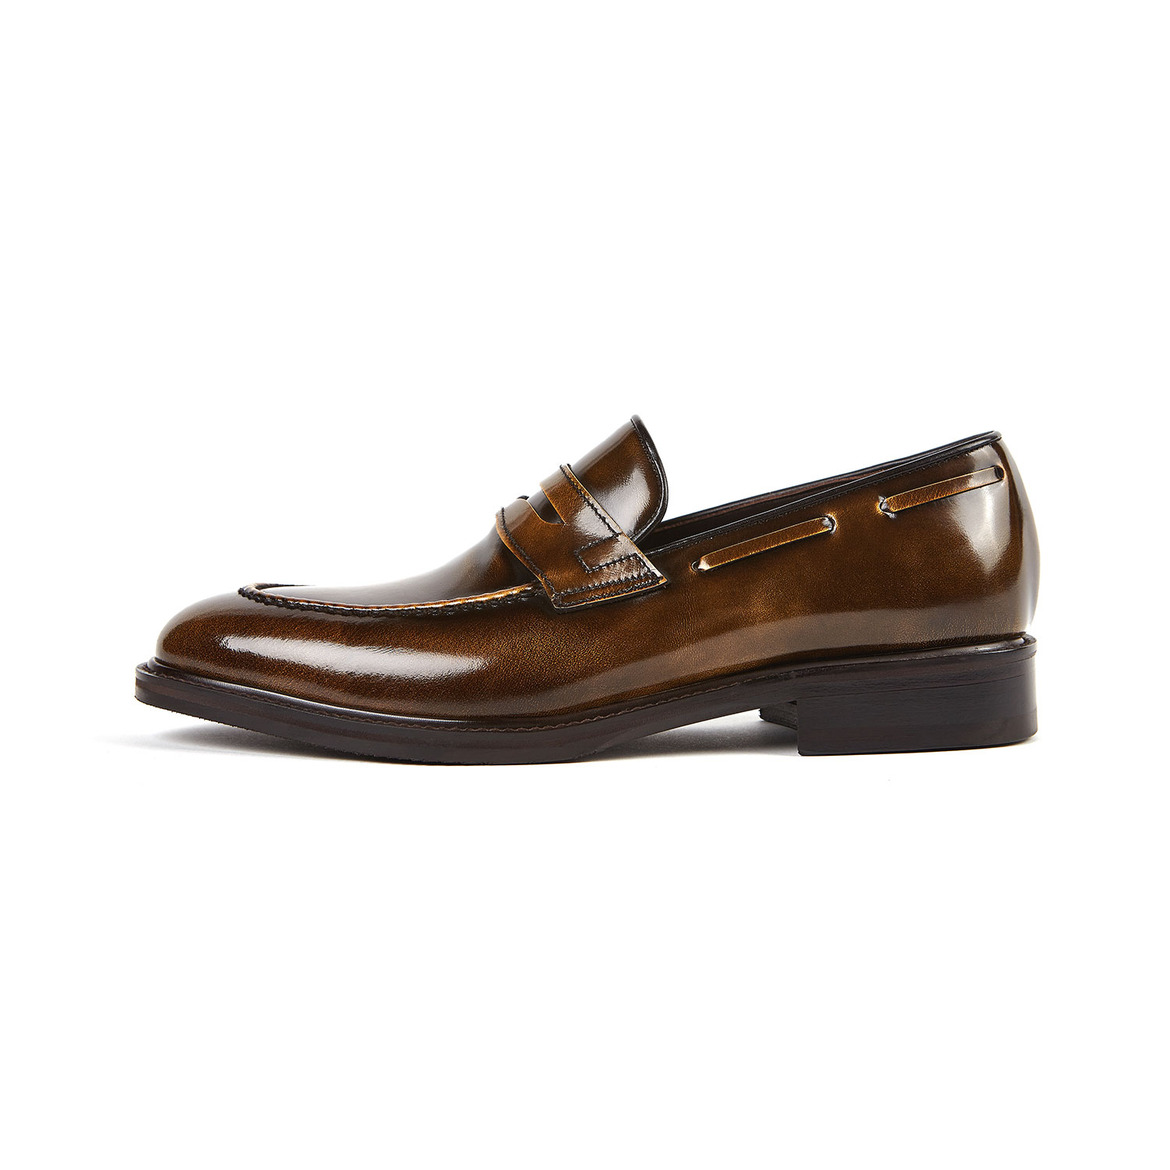 MIRAVO 9 [Premium Penny Loafer] (Customizable)